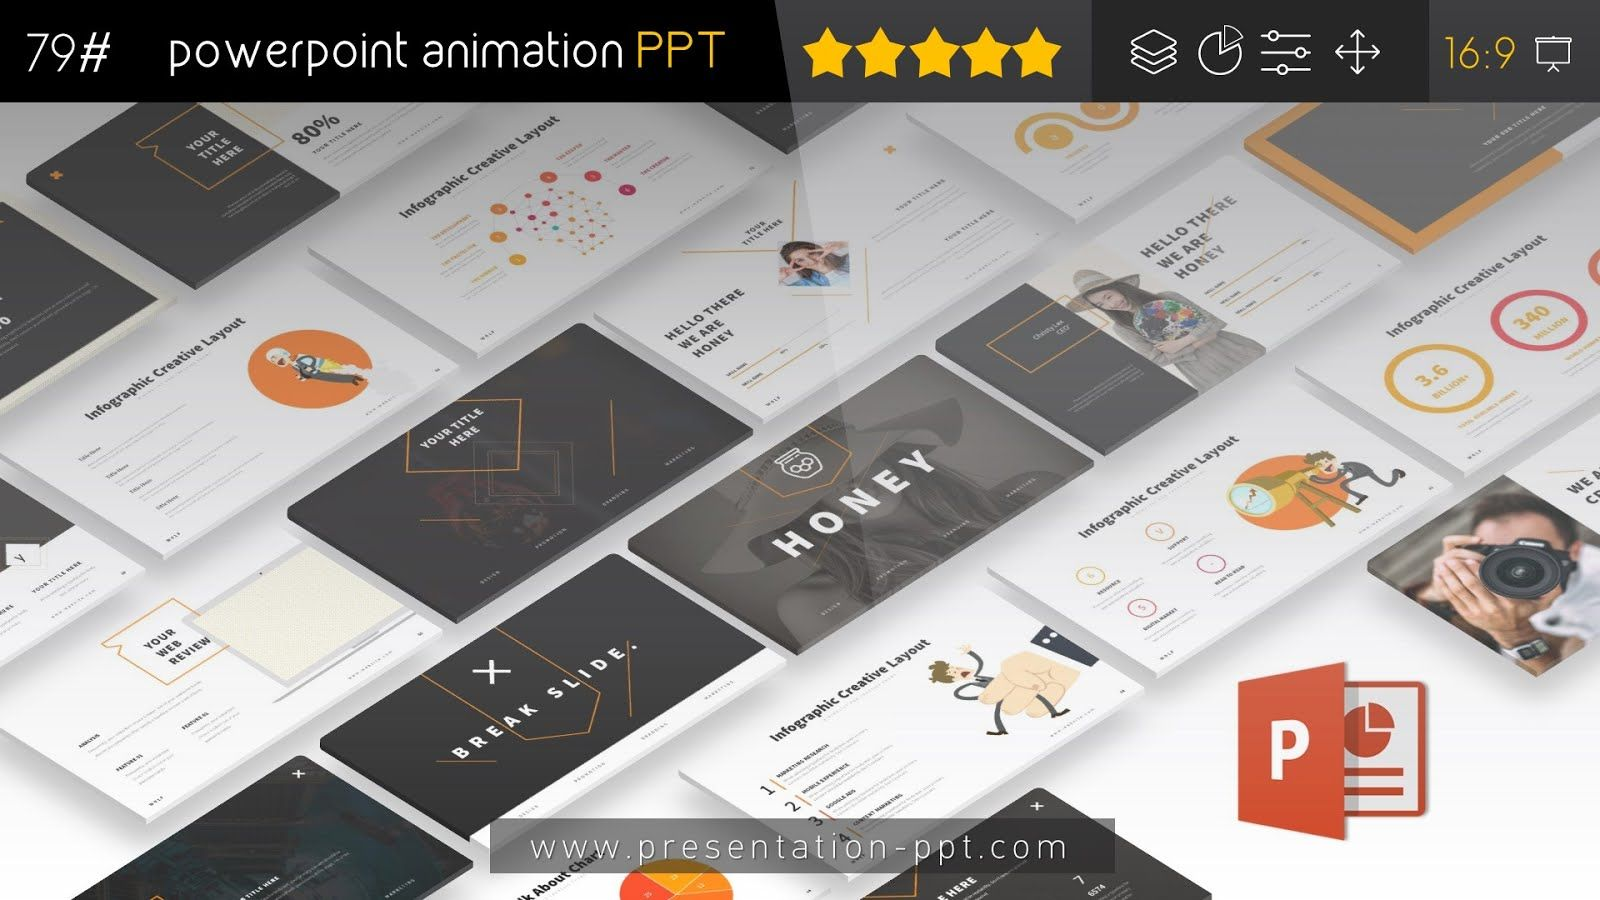 Good Template For Powerpoint Presentations Animation Free Powerpoint Presentation Powerpoint Animation Powerpoint